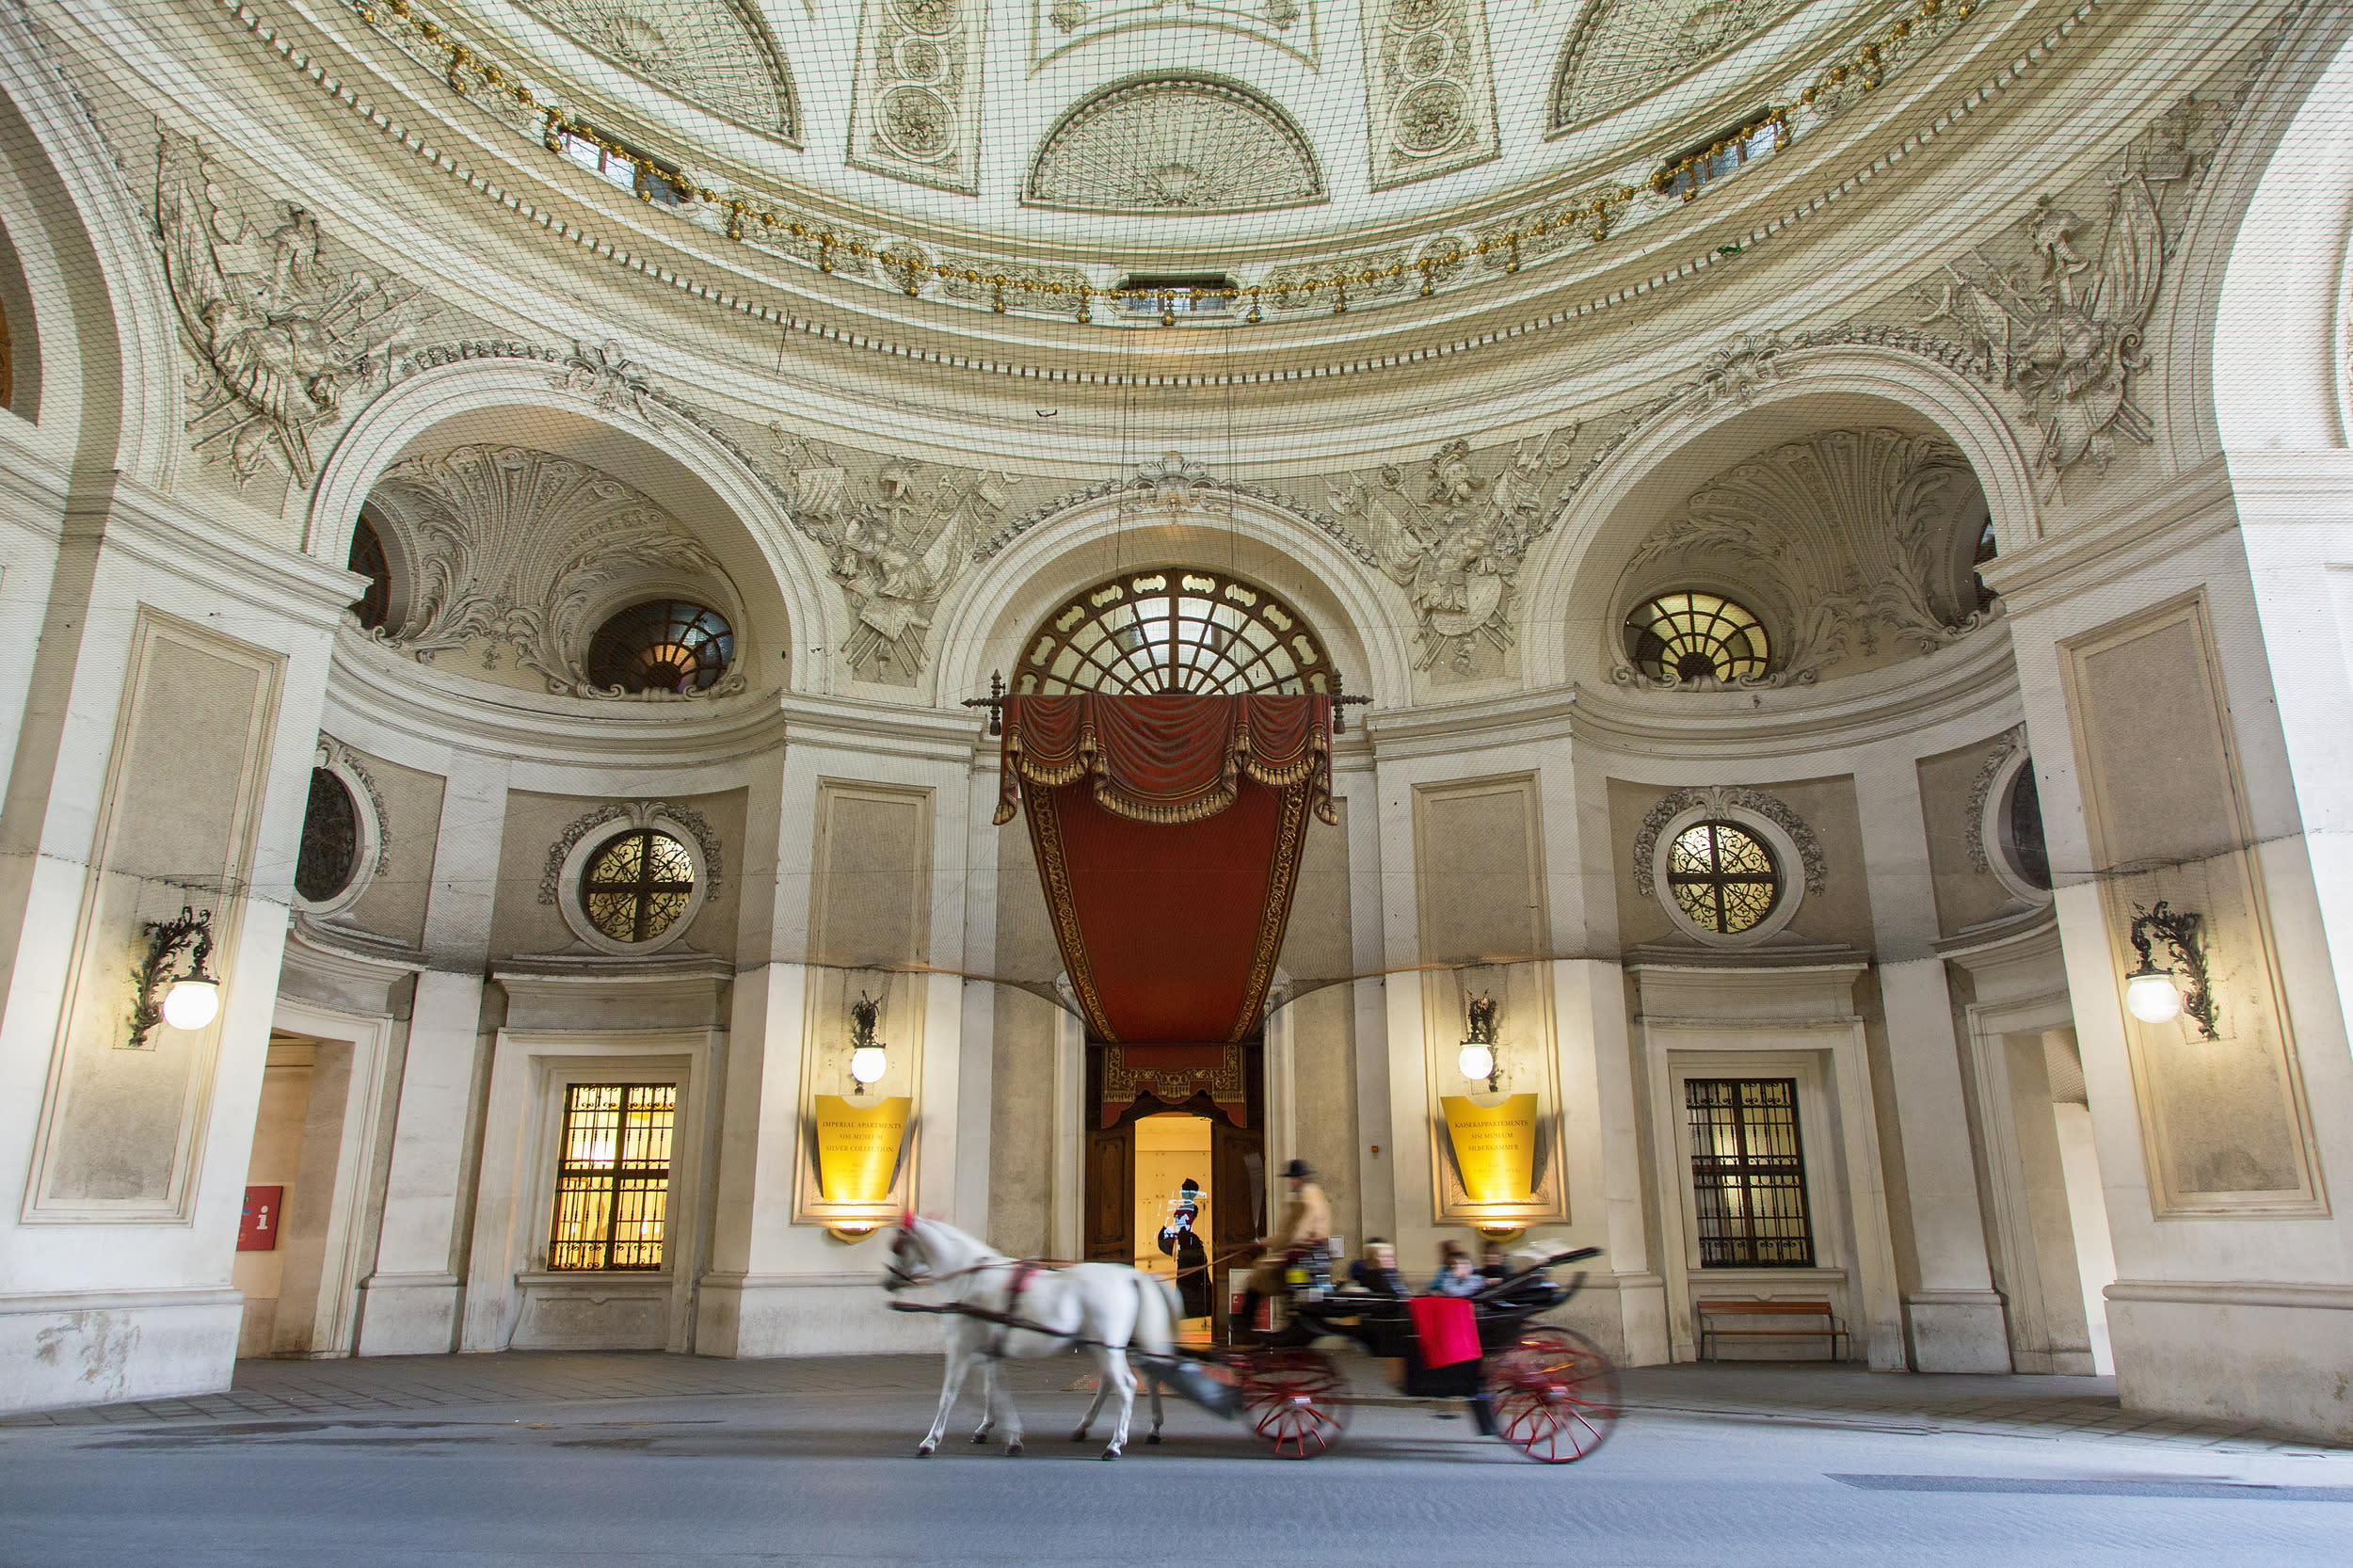 """<p><span style=""""font-family:helvetica, arial;font-size:16px;background-color:rgb(255, 255, 255);"""">Vienna is like a romantic city that you might read about in fairytales. Horse-drawn carriages are ready to collect you on Stephansplatz, Albertinaplatz and in front of the Hofburg, to take you for an evening spin around the stunning city. You'll be surrounded by the romantic classical music of Mozart, and will be in awe of the romantic splendour surrounding you. From delightful cobbled streets to opulent coffee shops, fully furnished with chandeliers, everything about Vienna breathes class. Marvel at the regal splendour of Vienna's palaces, spend an evening at the opera or ballet, the 'Staatsoper' (Vienna state opera), gazing down at the world-famous Vienna Philharmonic in the pit below.</span></p>"""